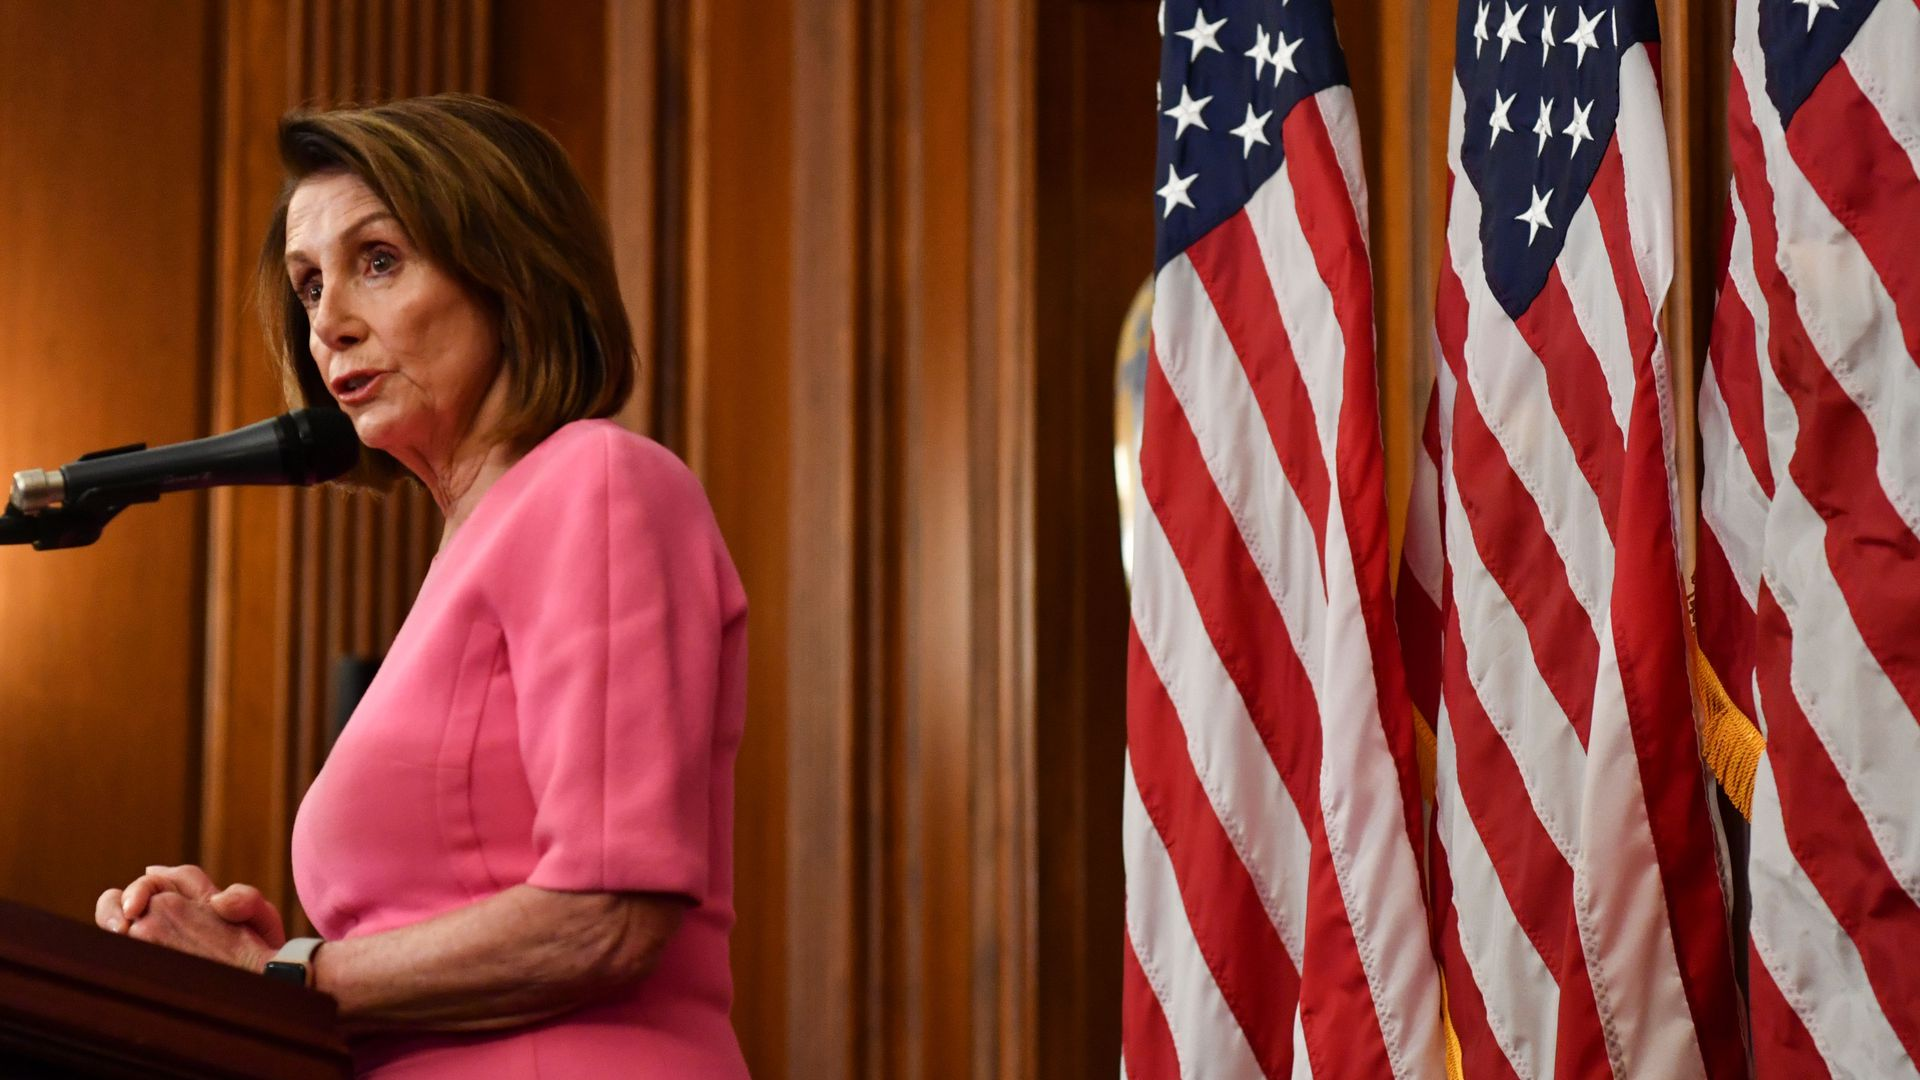 US House Minority leader Nancy Pelosi speaks during a press conference after Democrats took back control of the house in Washington, DC